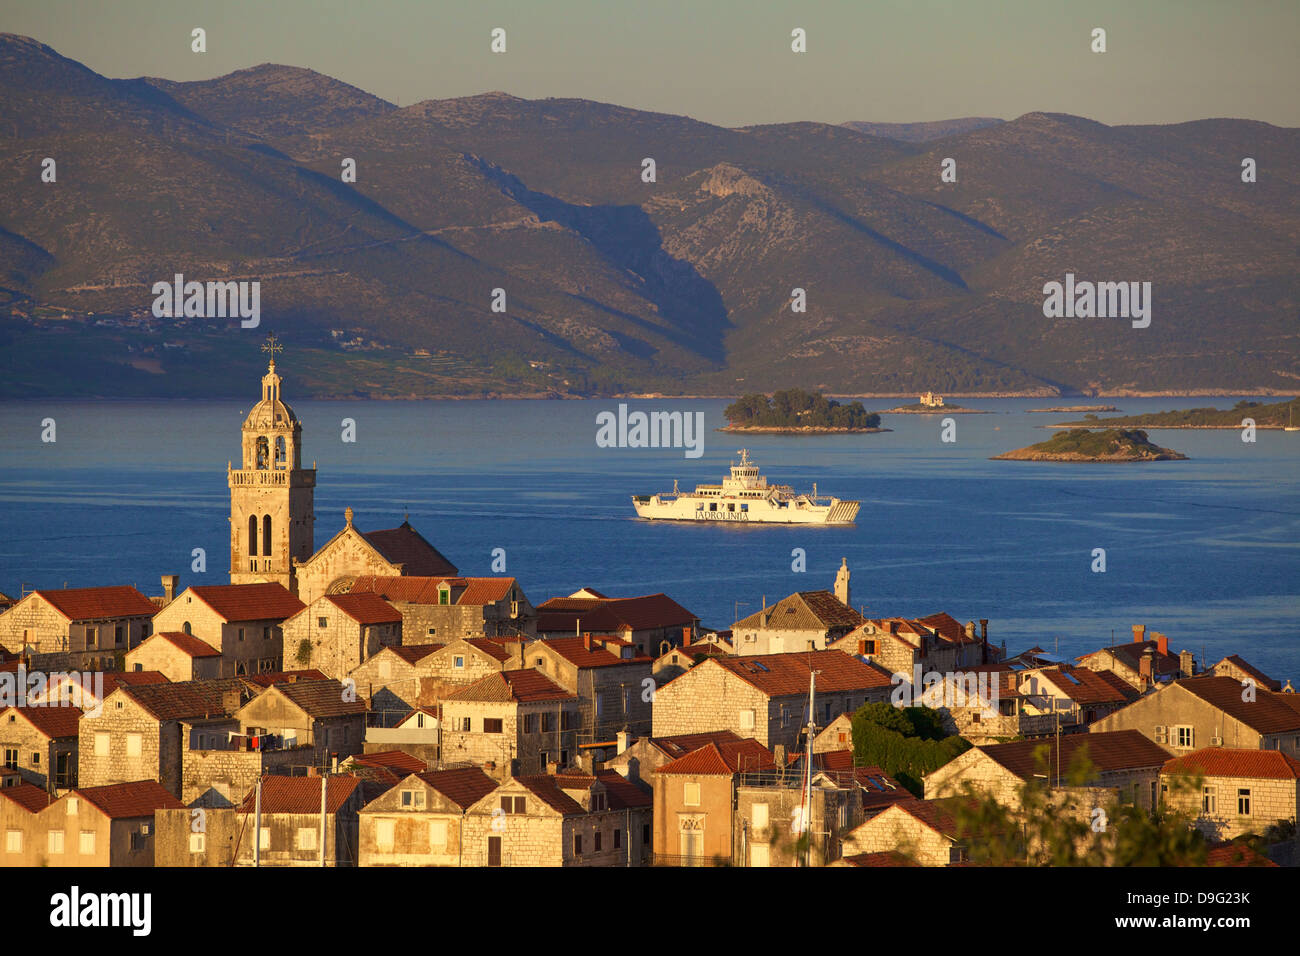 View over Korcula Town, Korcula, Dalmatian Coast, Croatia, - Stock Image